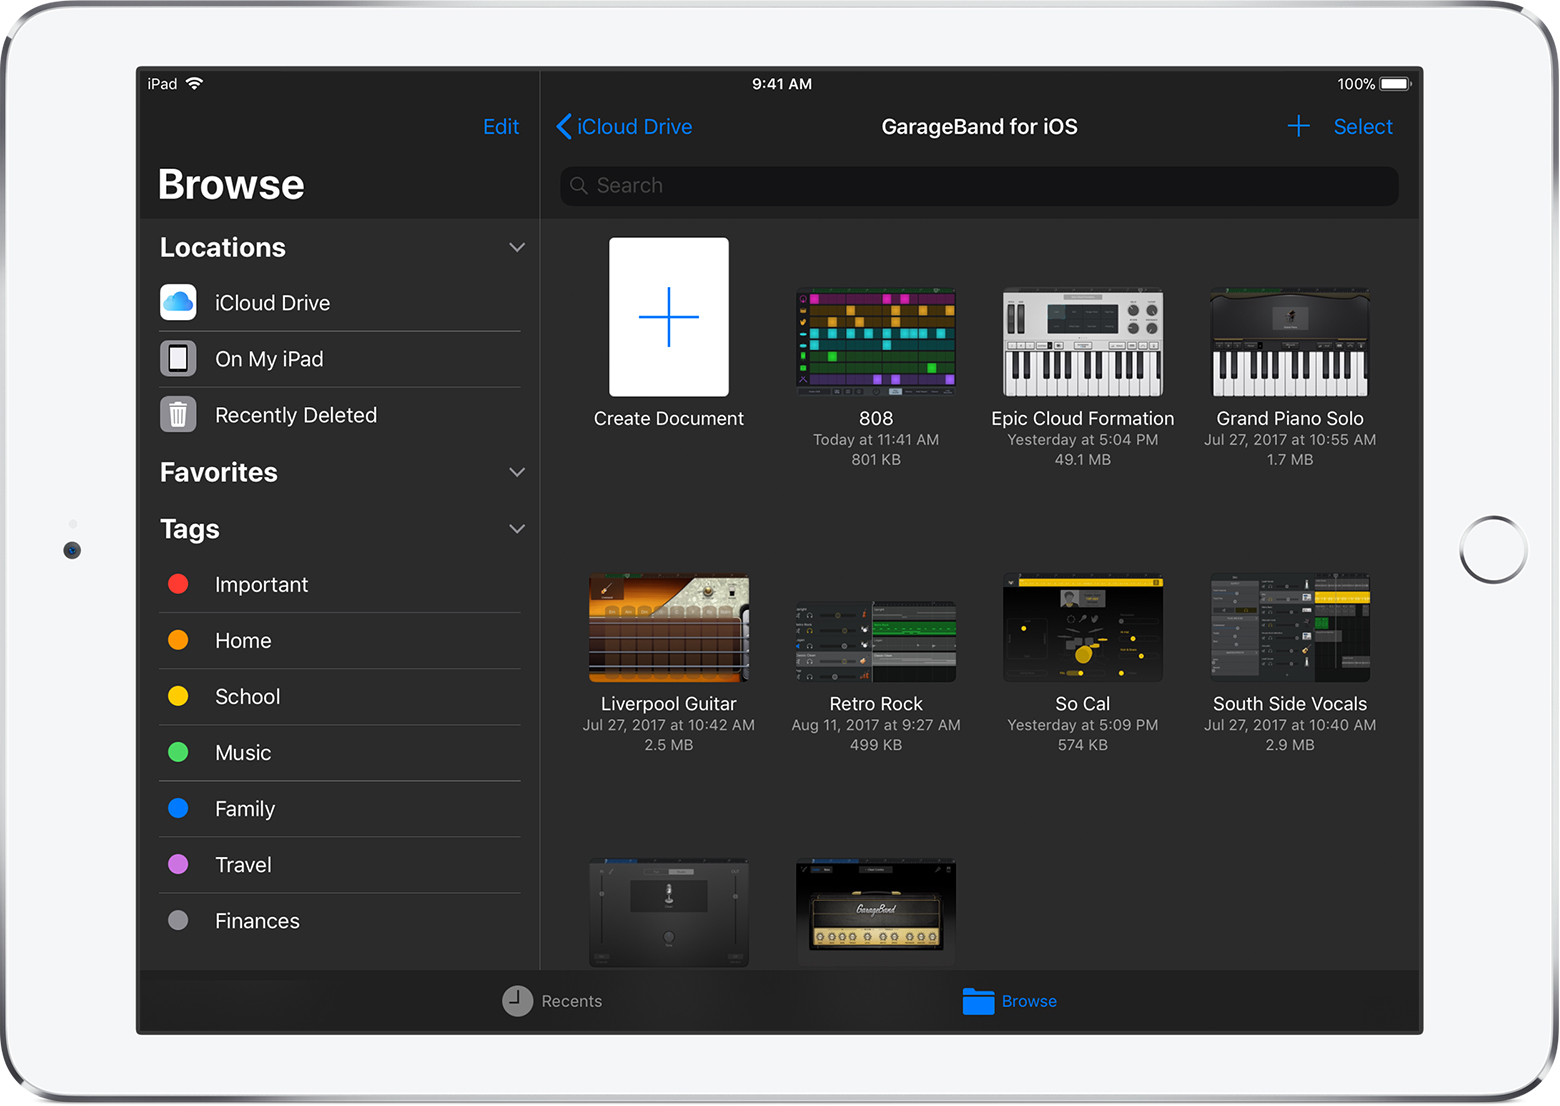 Garageband X How It Works Pdf Browse Your Garageband For Ios Songs Apple Support